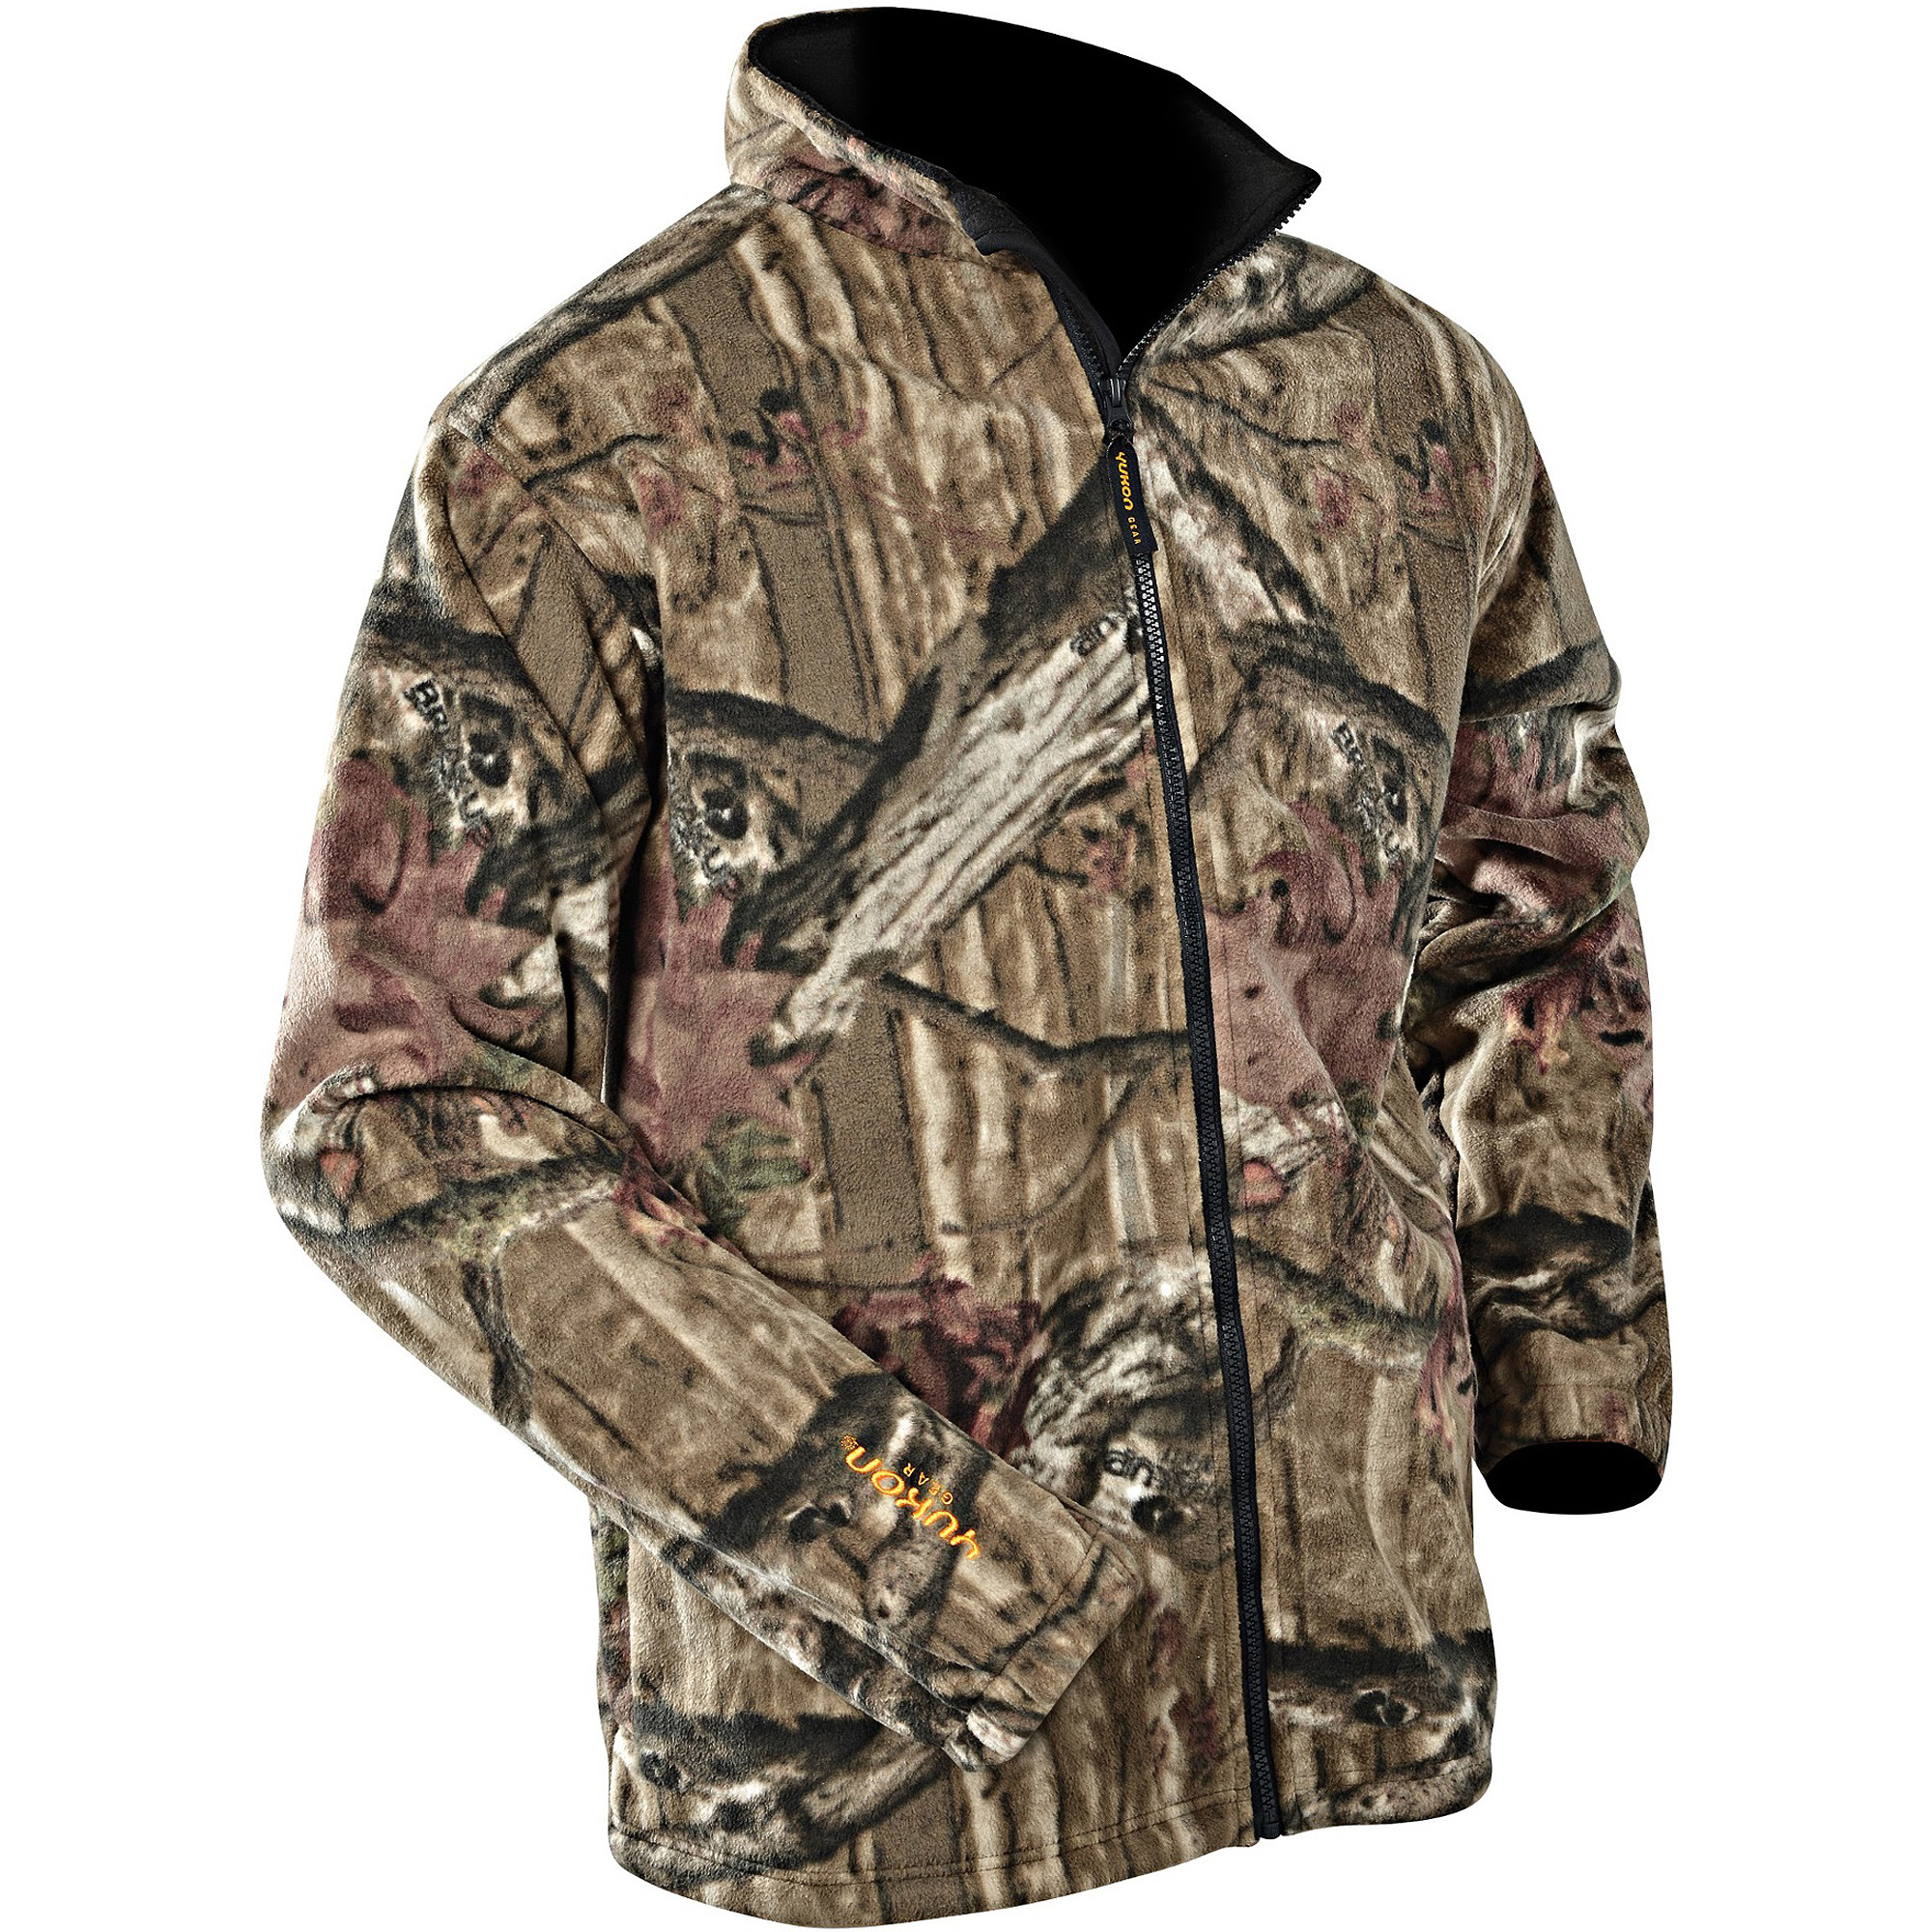 Yukon Gear Men's Extreme Fleece Jacket, Break Up Infinity by Msg Imports